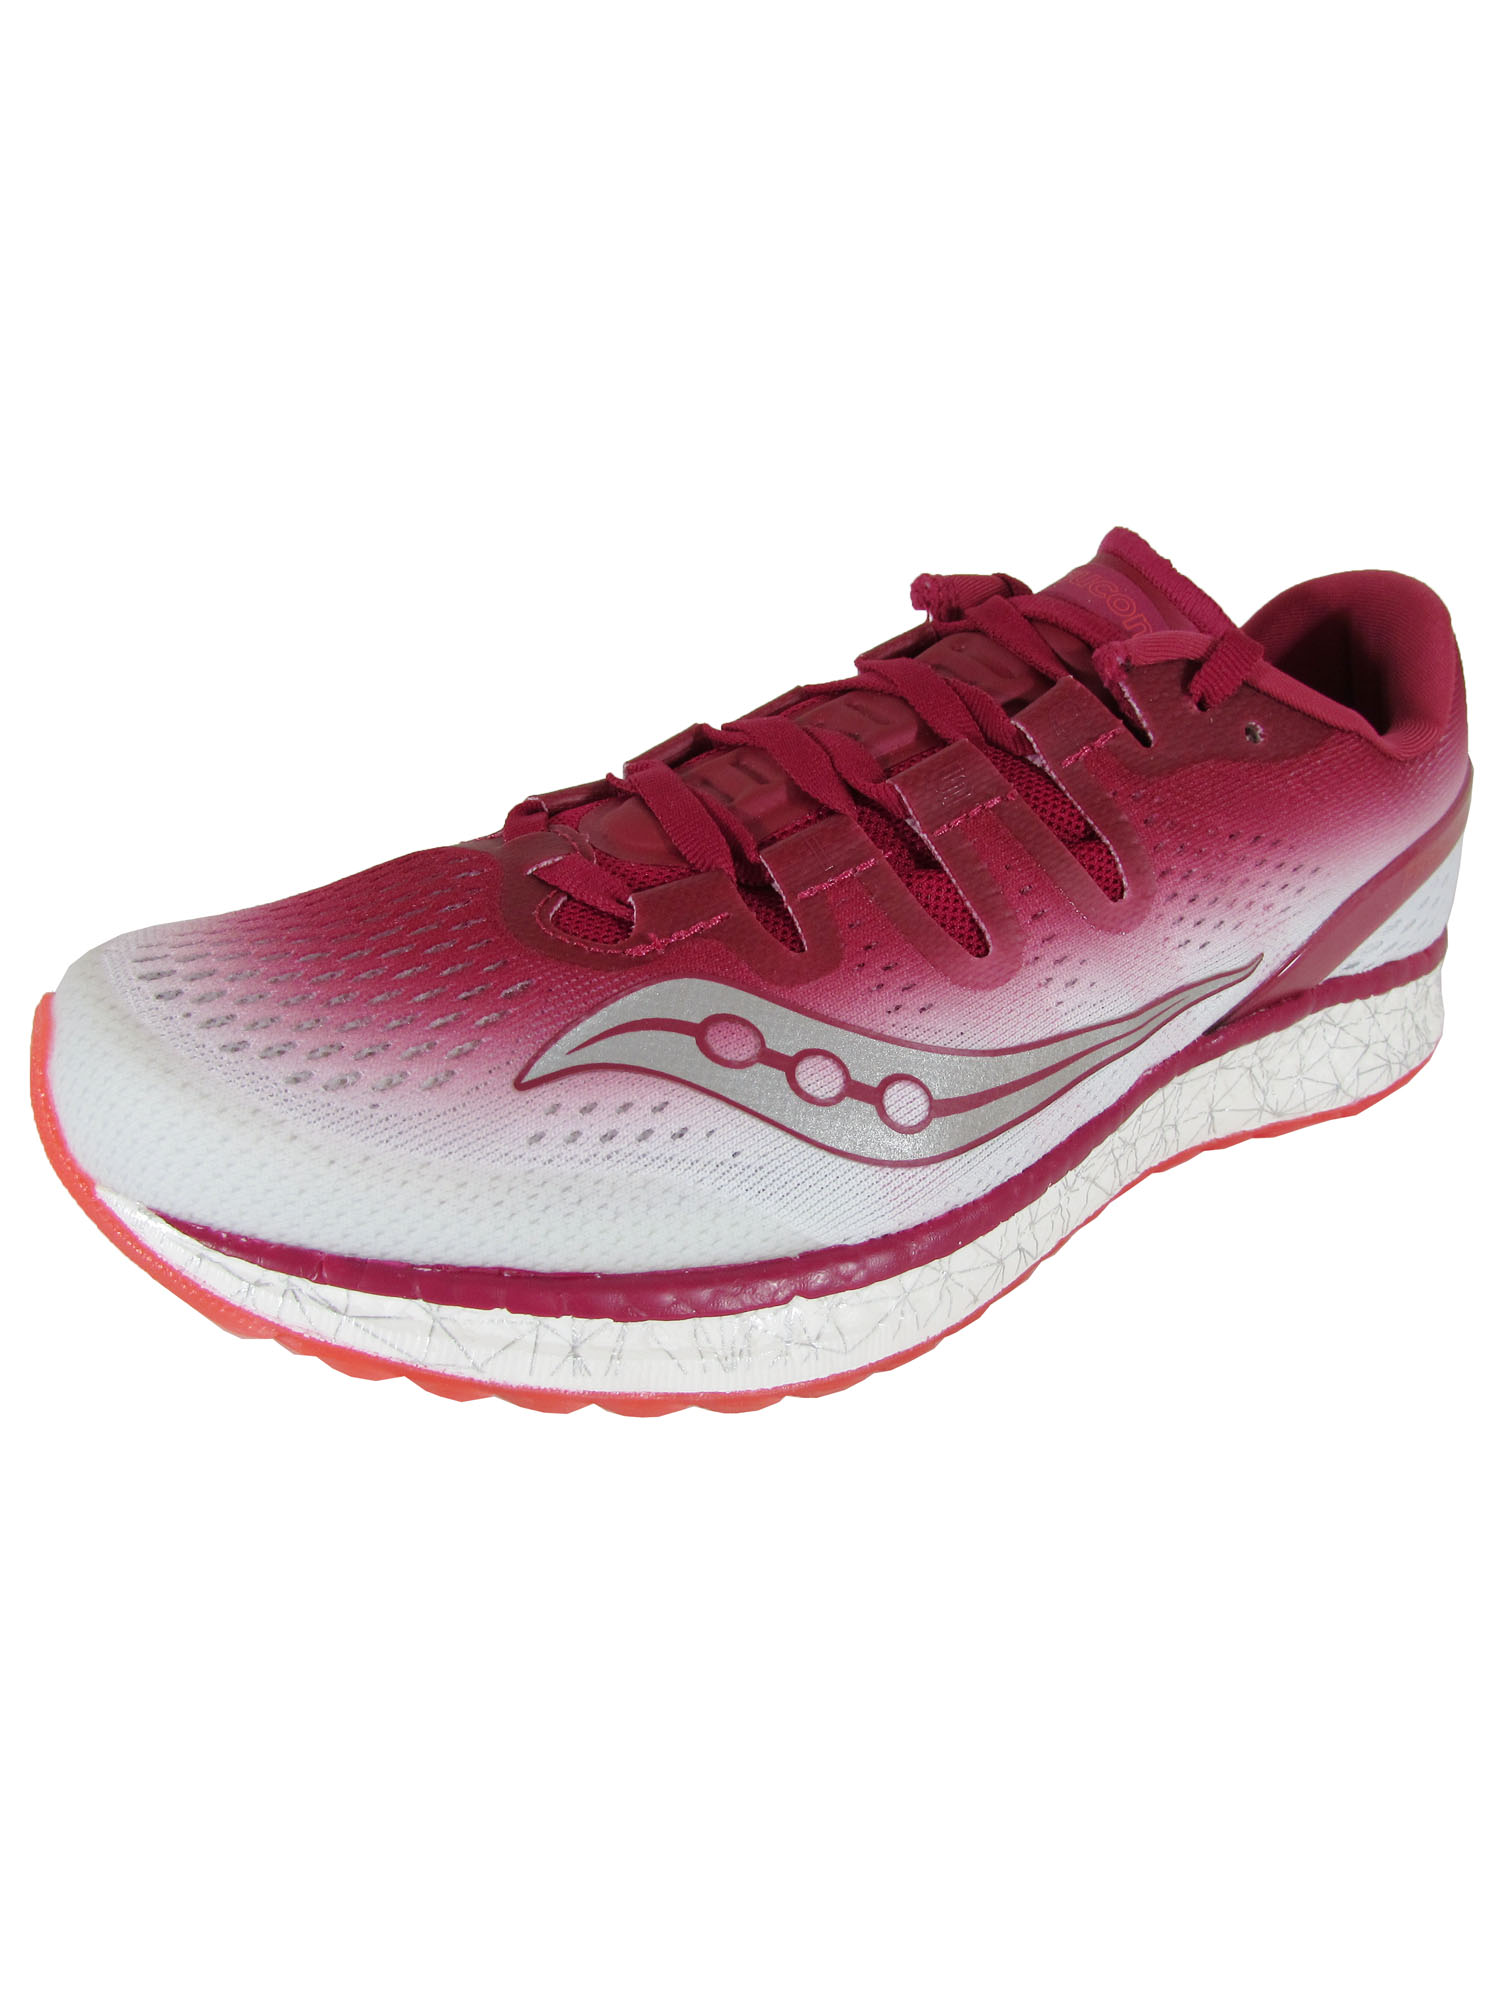 Saucony Womens Freedom ISO Running Sneaker Shoes by Saucony